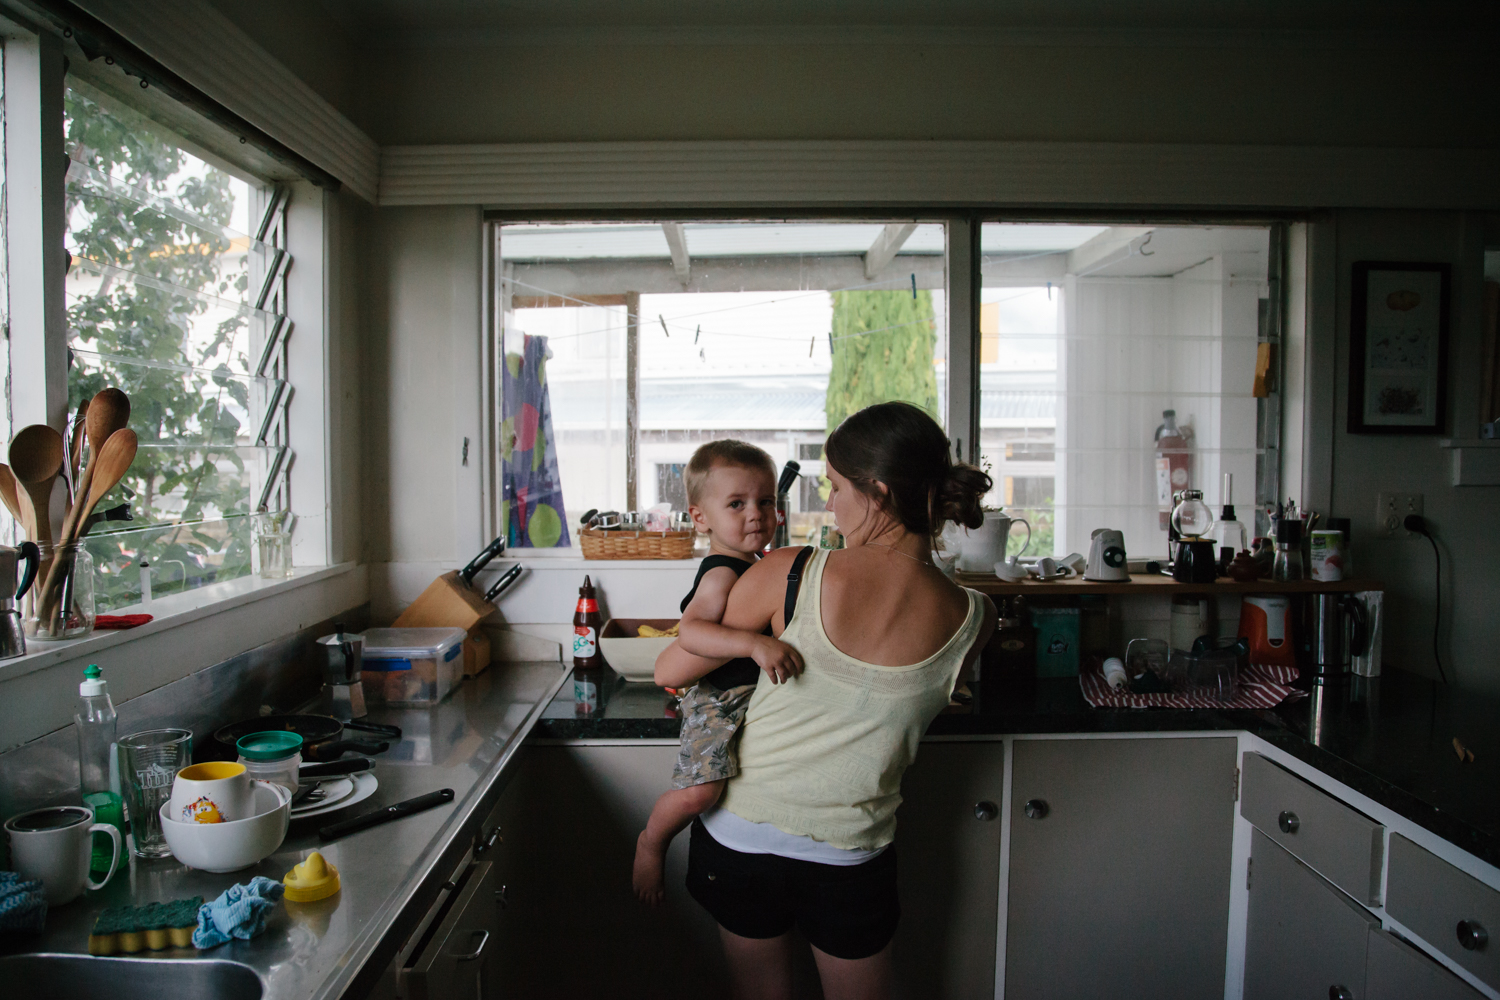 michelle_frances_photography_auckland_family_photographer_dishes.jpg